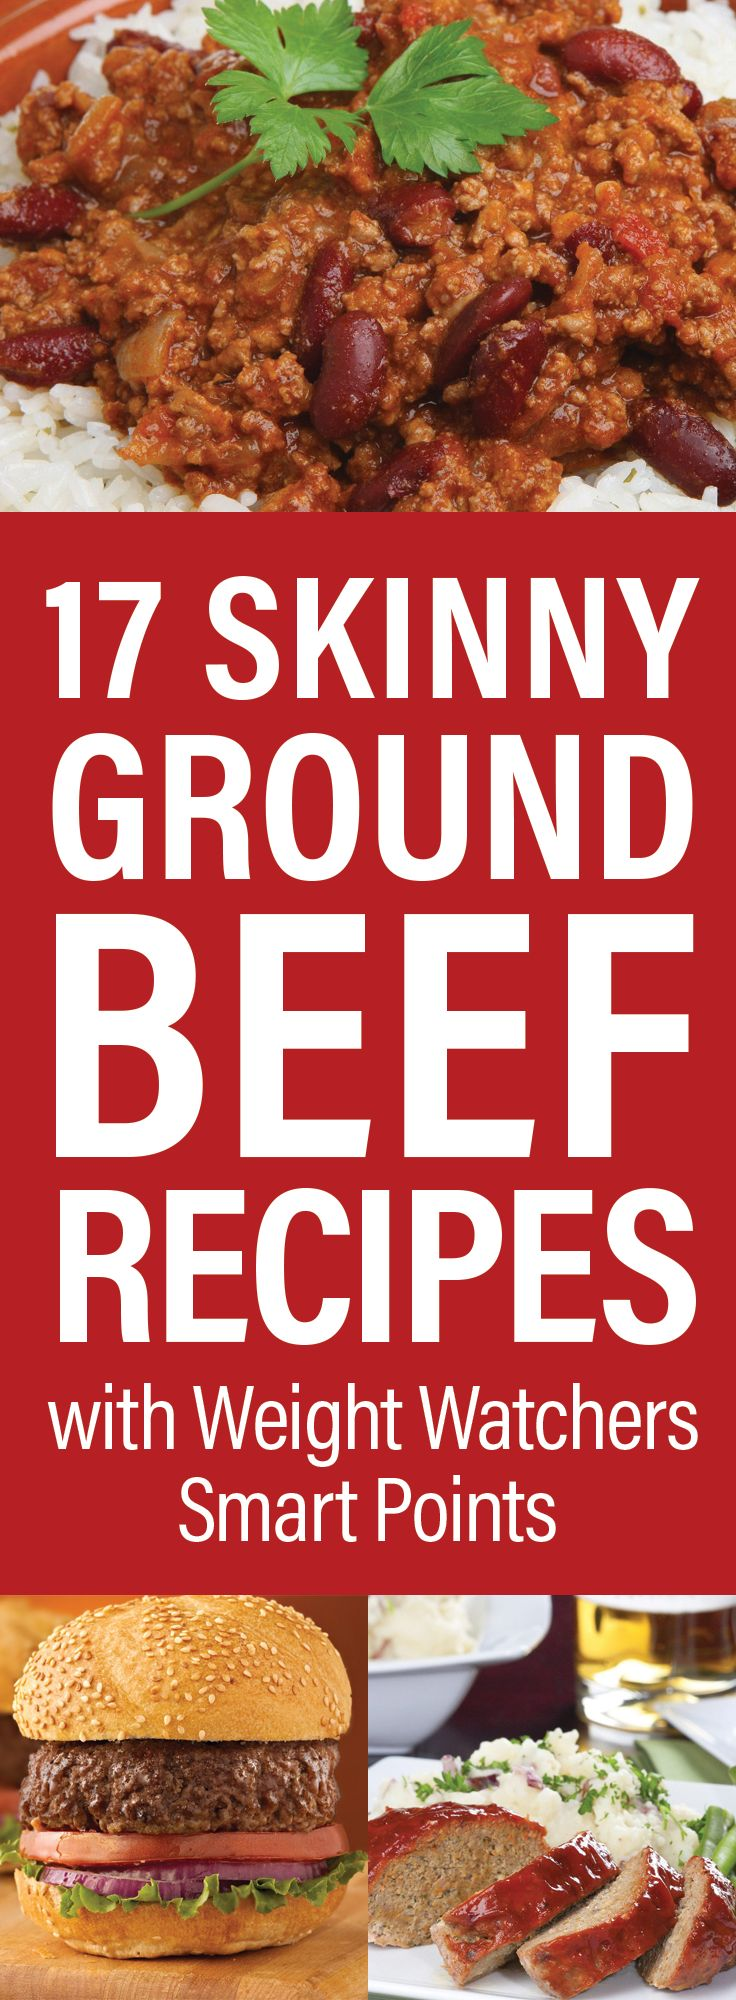 17 Skinny Ground Beef Dinner Recipes with Weight Watchers Smart Points including Taco Rice Skillet, Barbecue Meatloaf, Cabbage Casserole, Lasagna, Pizza Casserole, Chili, Hamburgers, Mexican Casserole, Ziti, Baked Spaghetti and more!